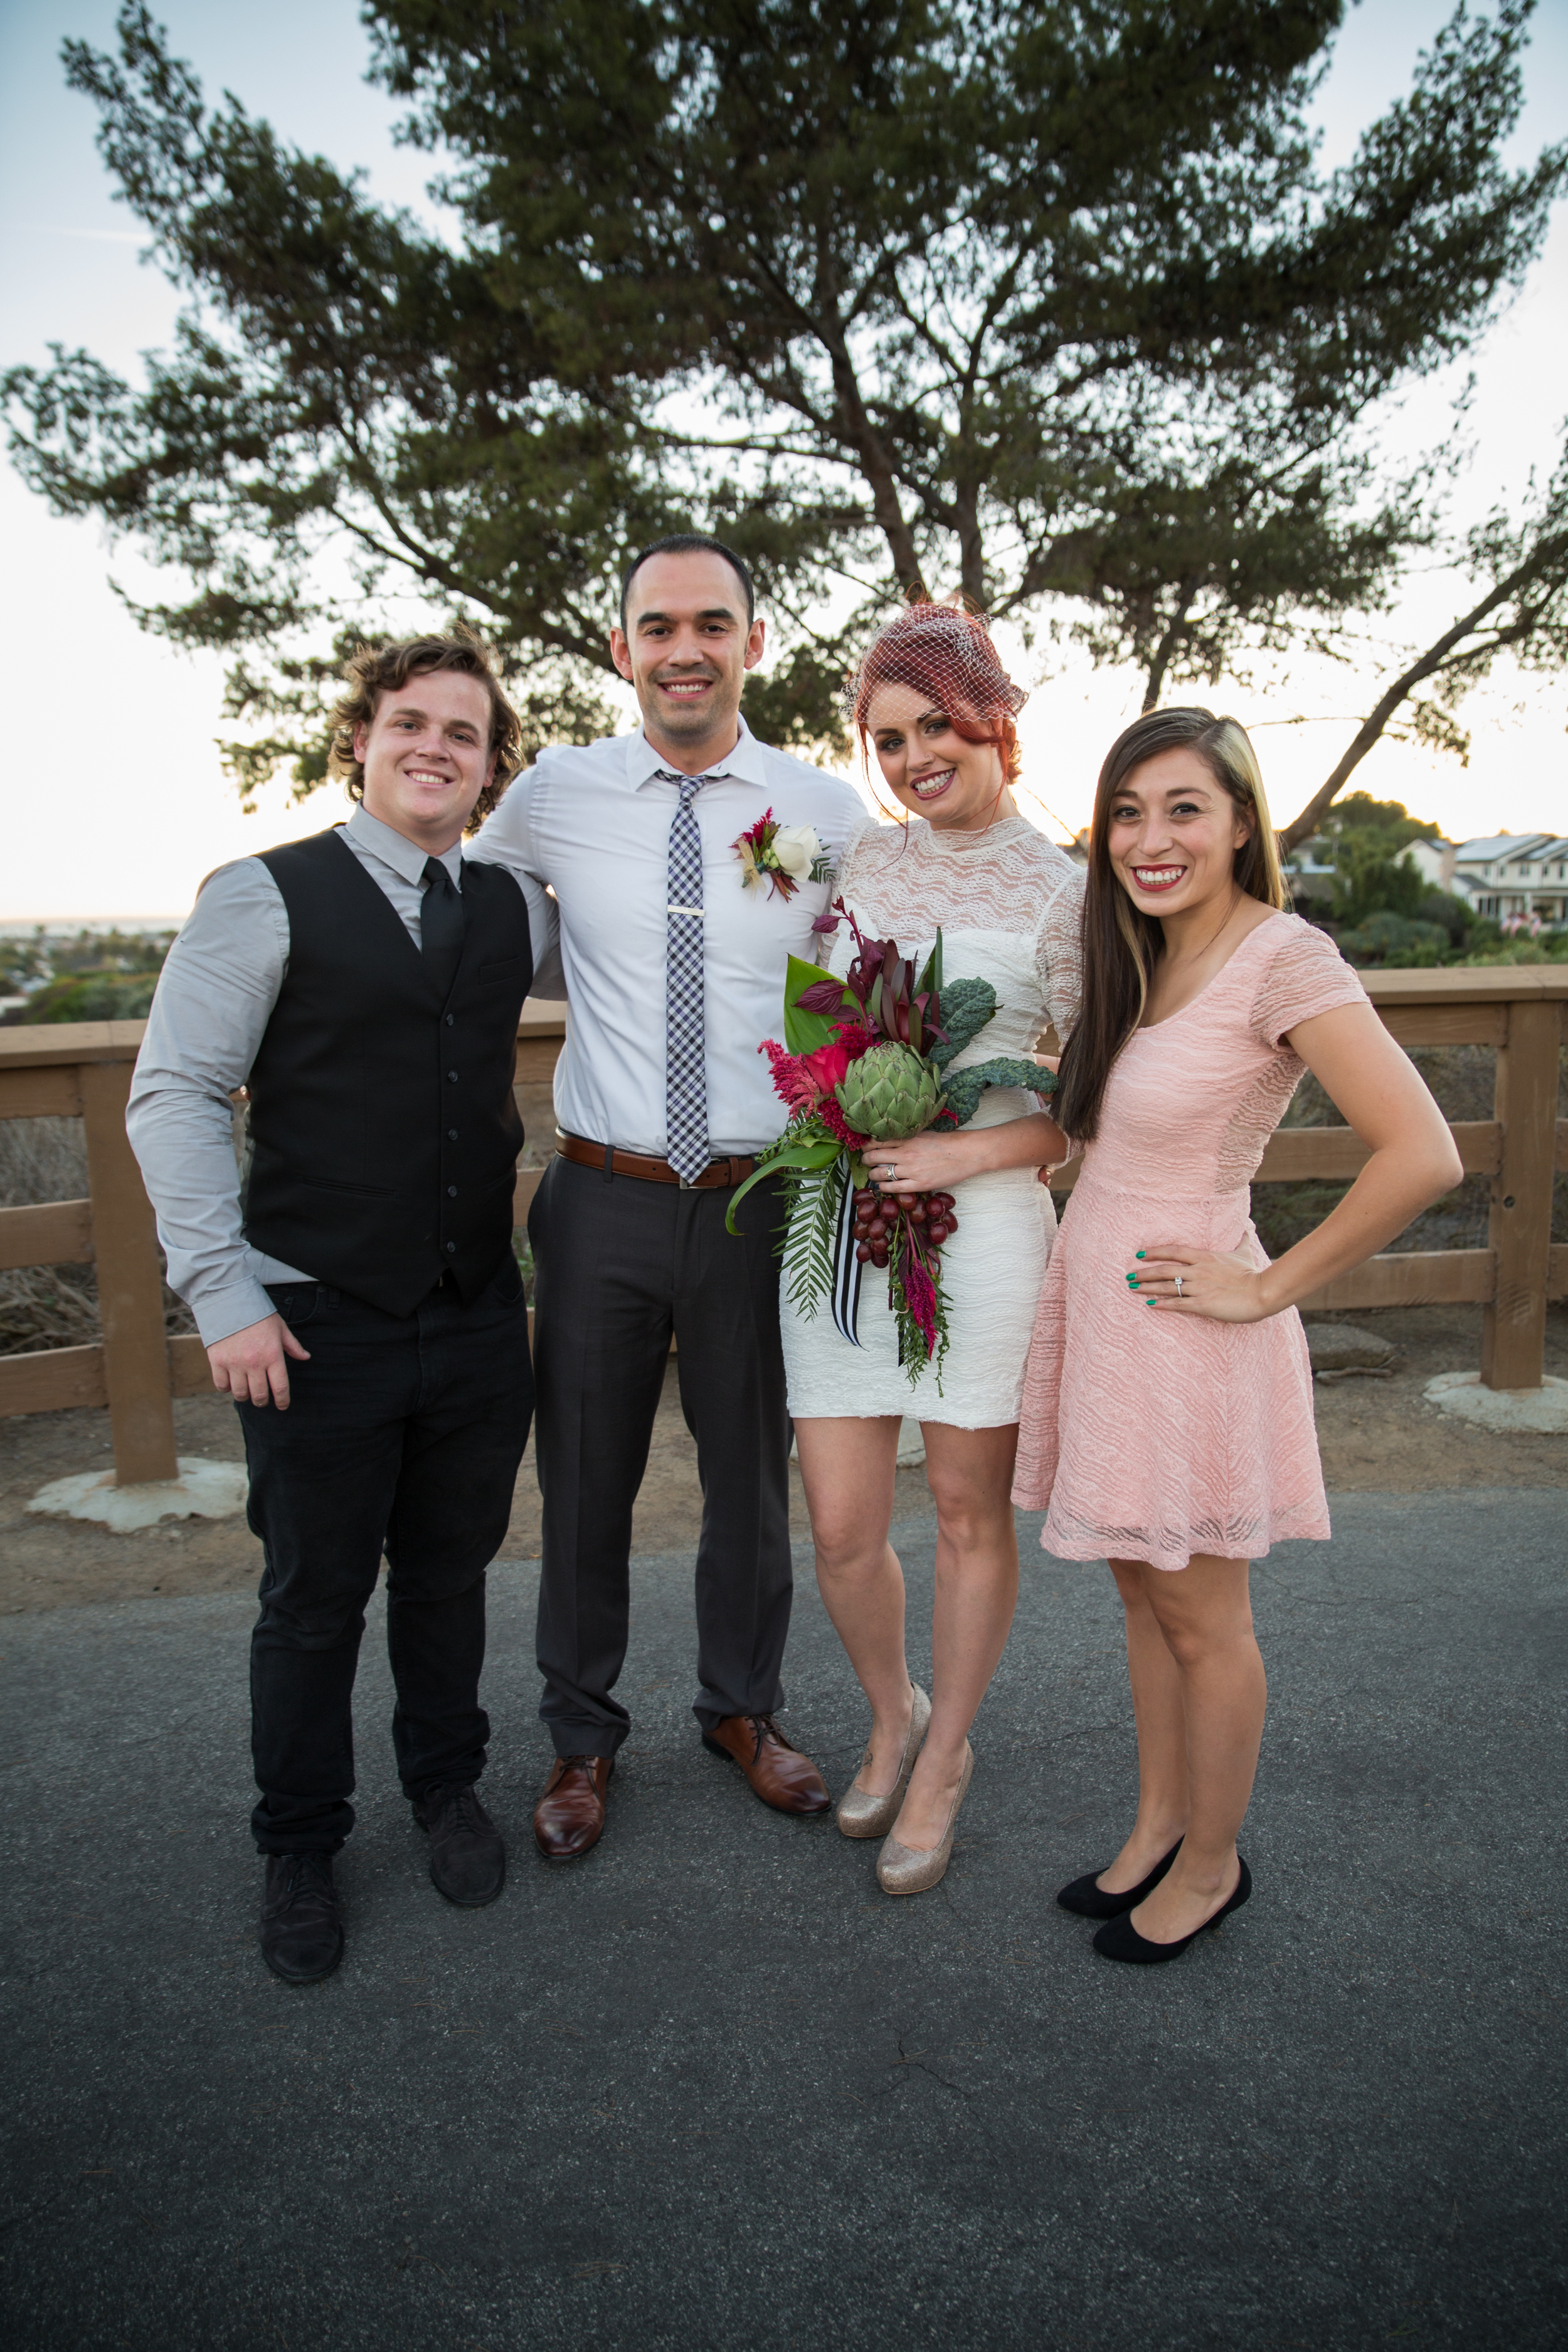 My fiance and I with the happy couple!